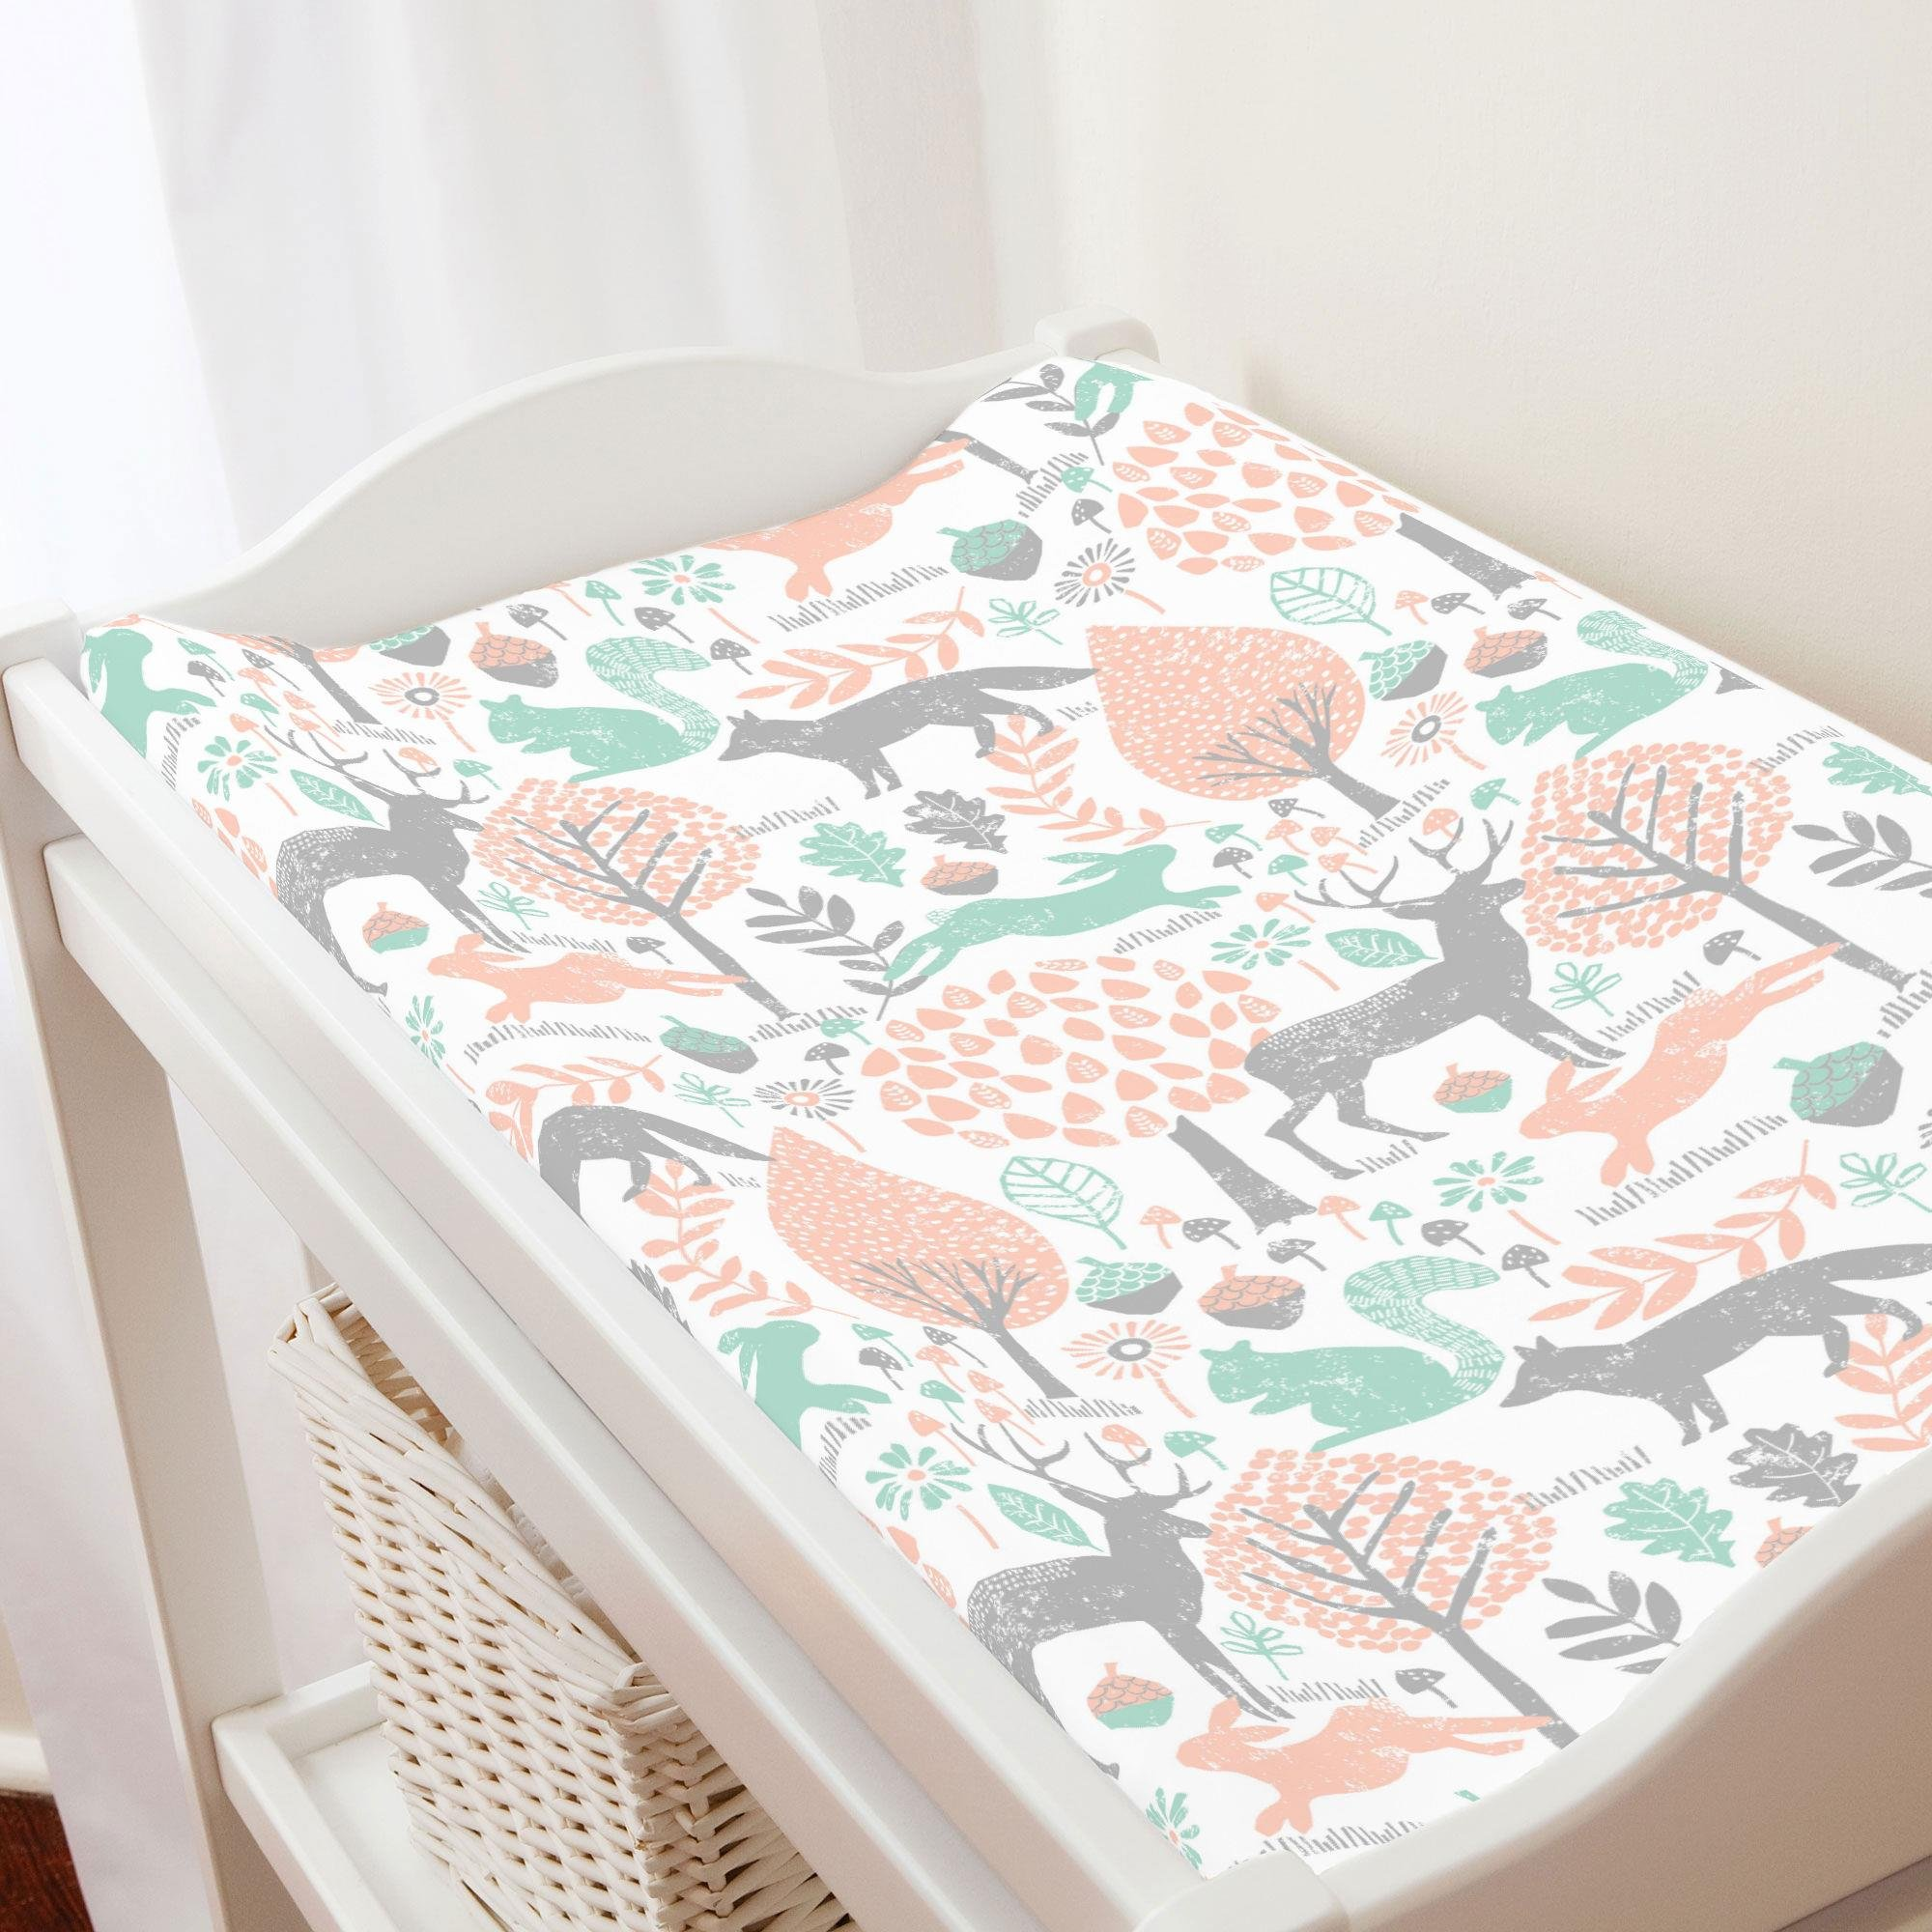 Carousel Designs Gray and Peach Woodland Animals Changing Pad Cover - Organic 100% Cotton Change Pad Cover - Made in The USA by Carousel Designs